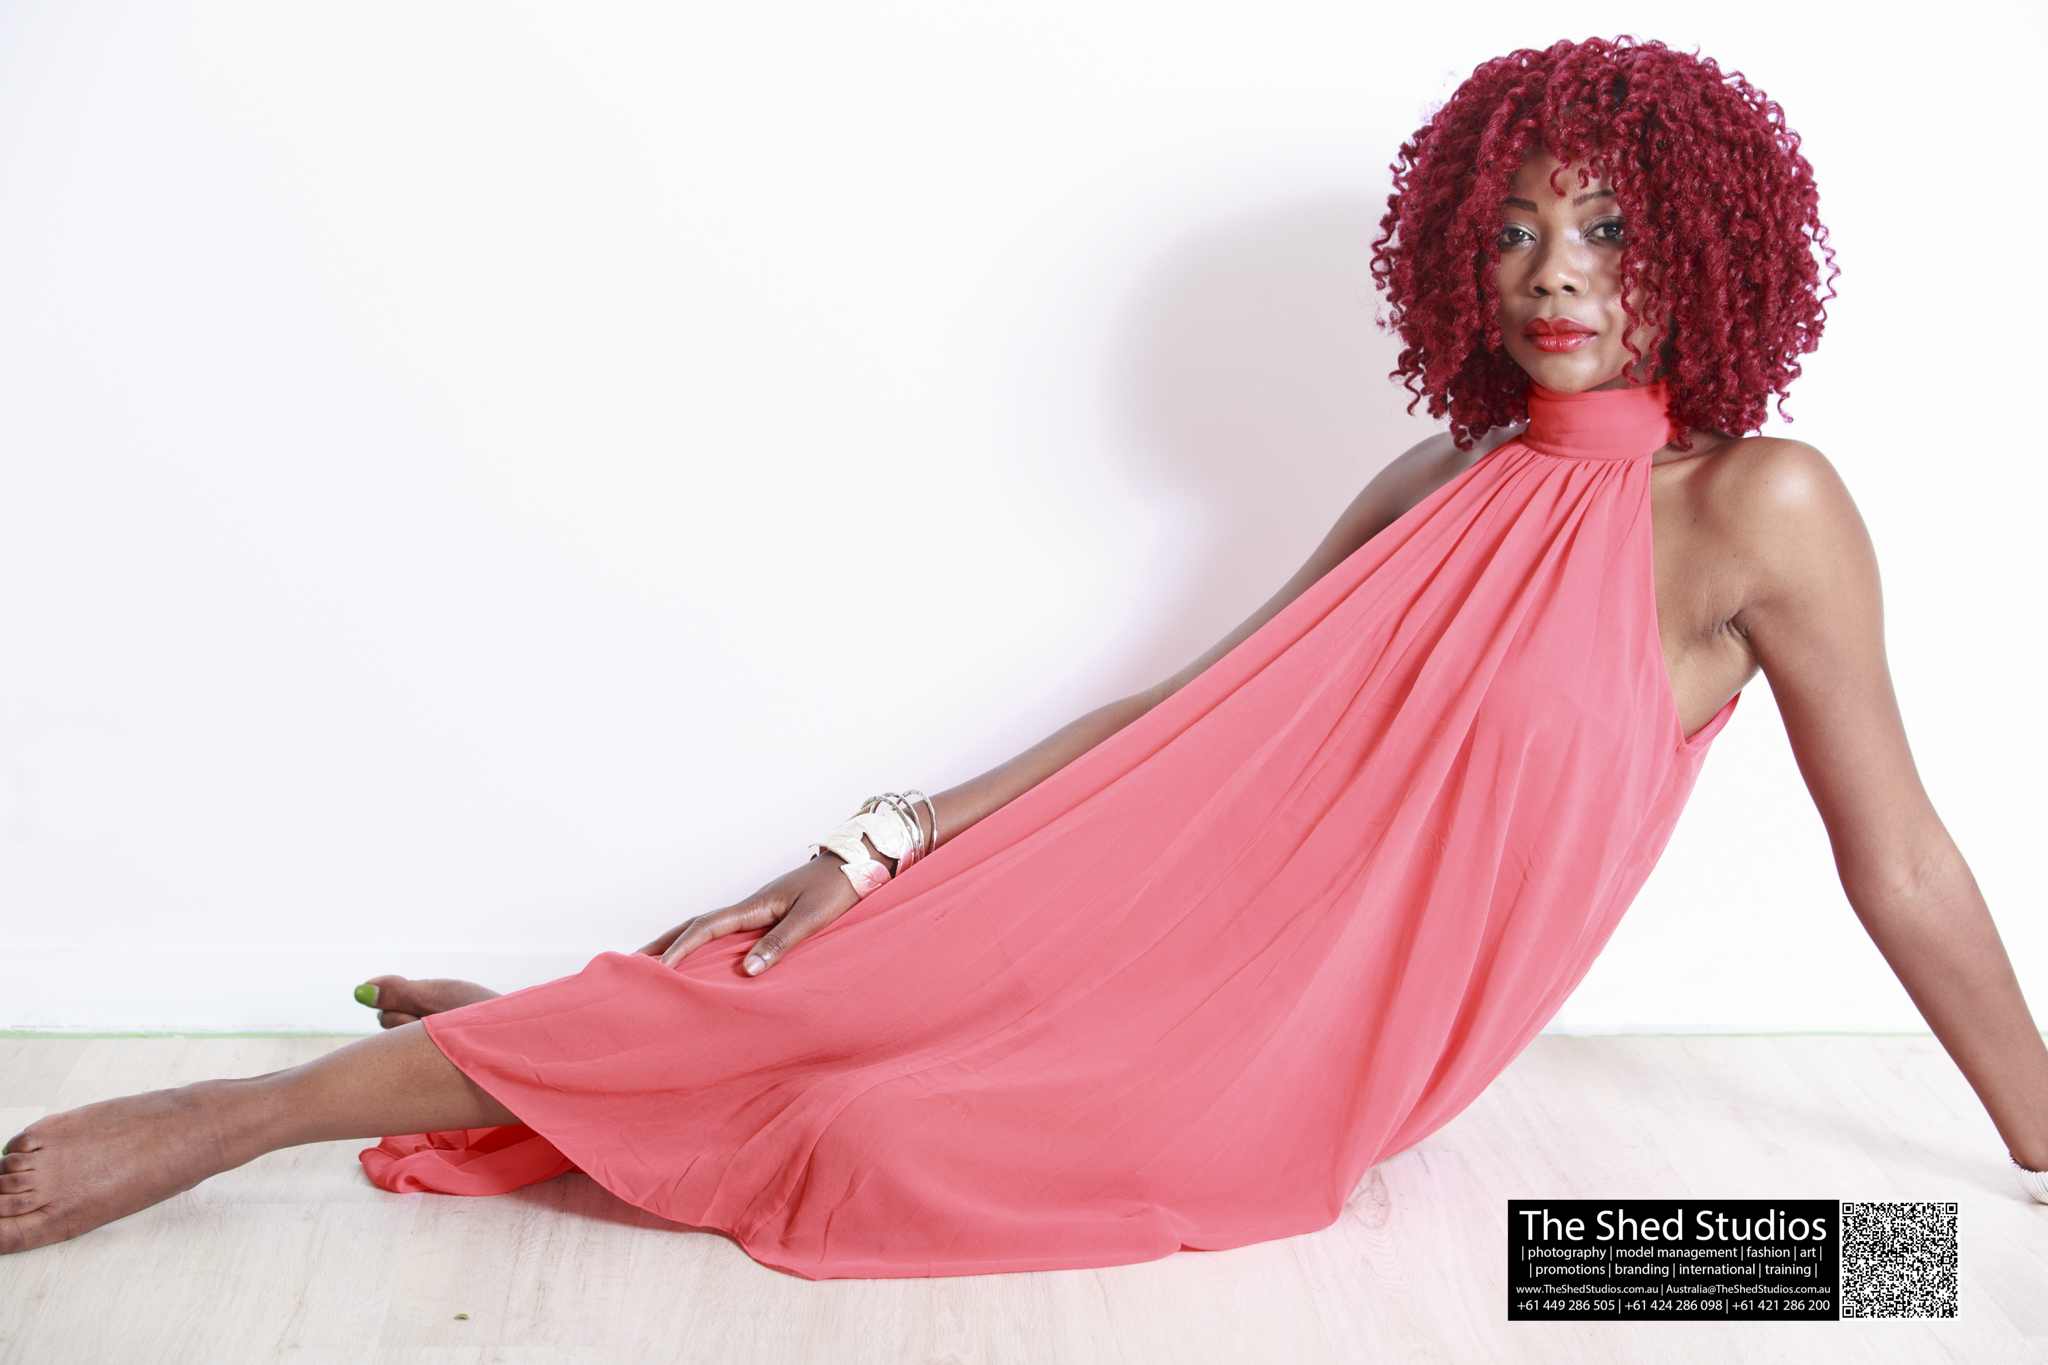 Photography by BK @ The Shed Studios